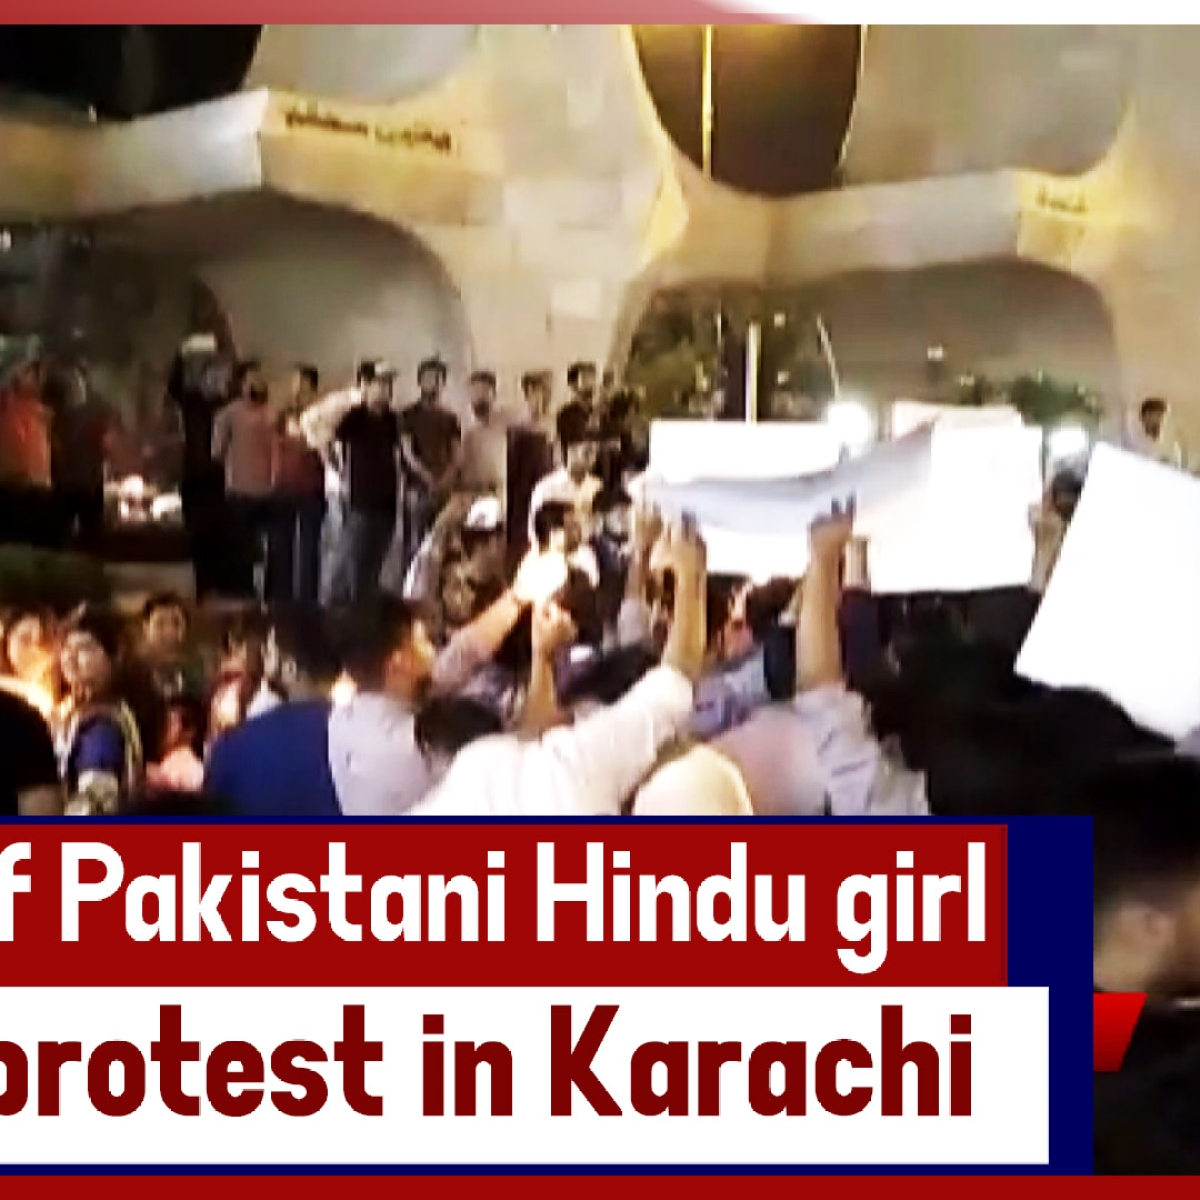 Murder Of Pakistani Hindu Girl Sparks Protest In Karachi